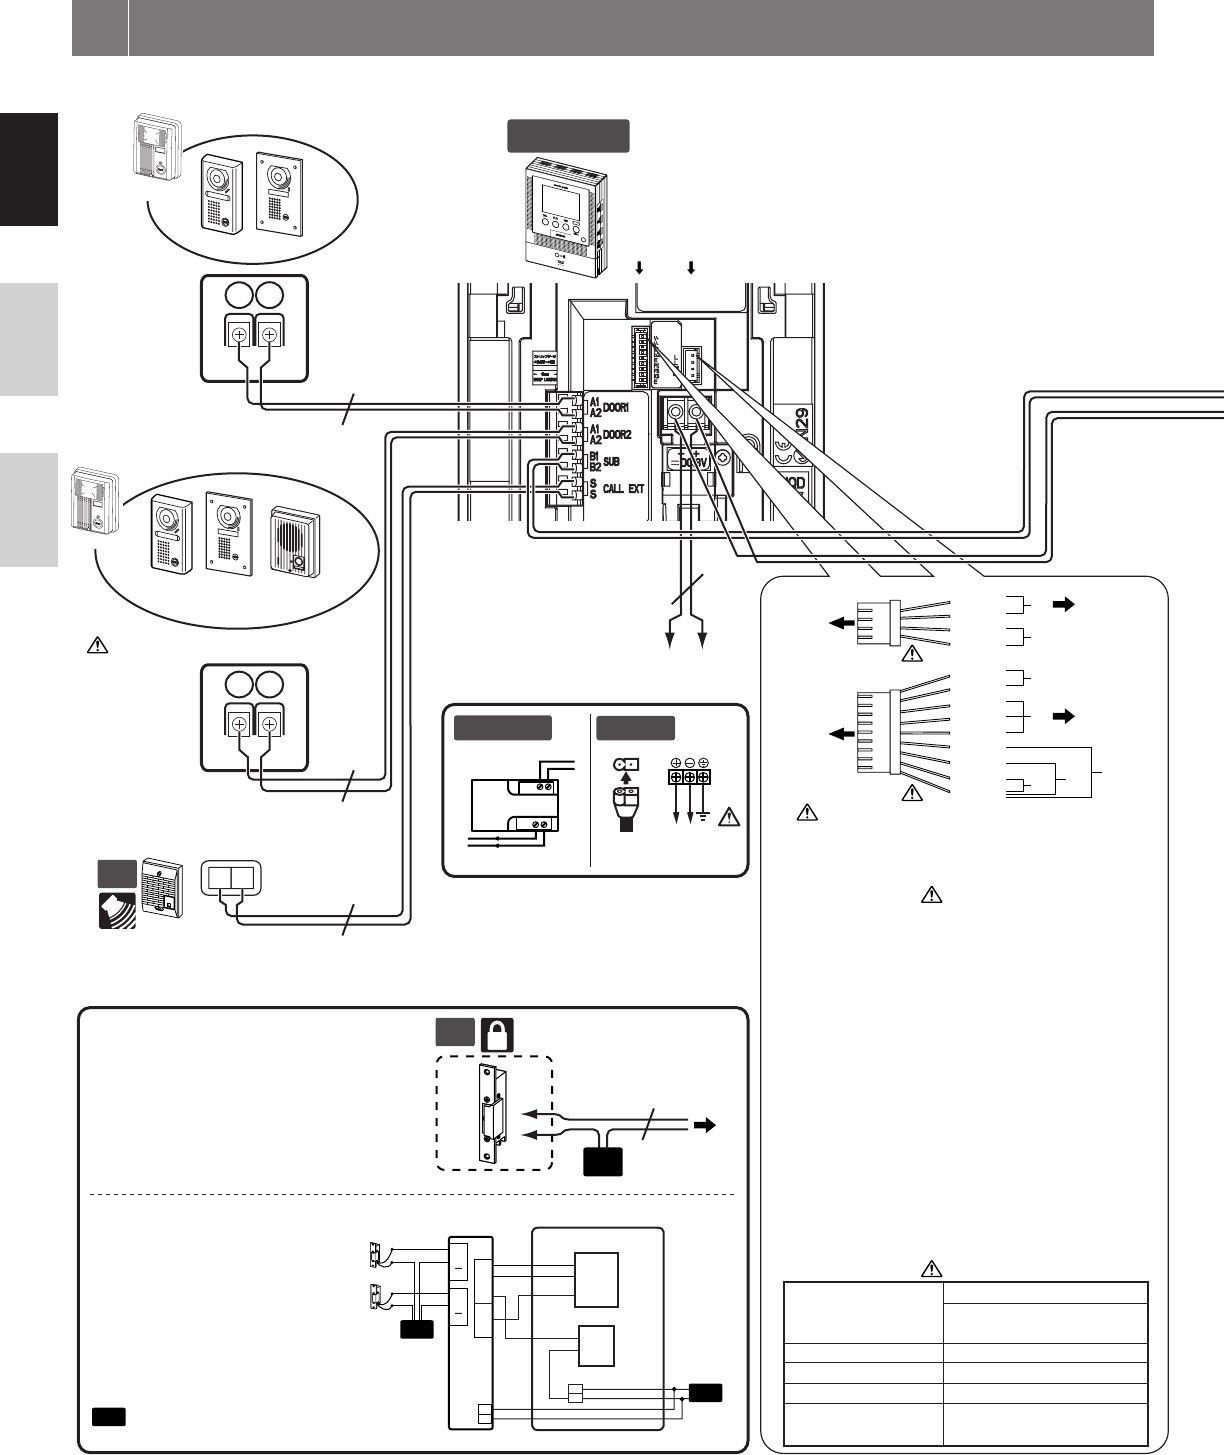 Unique Aiphone Intercom Wiring Diagram In